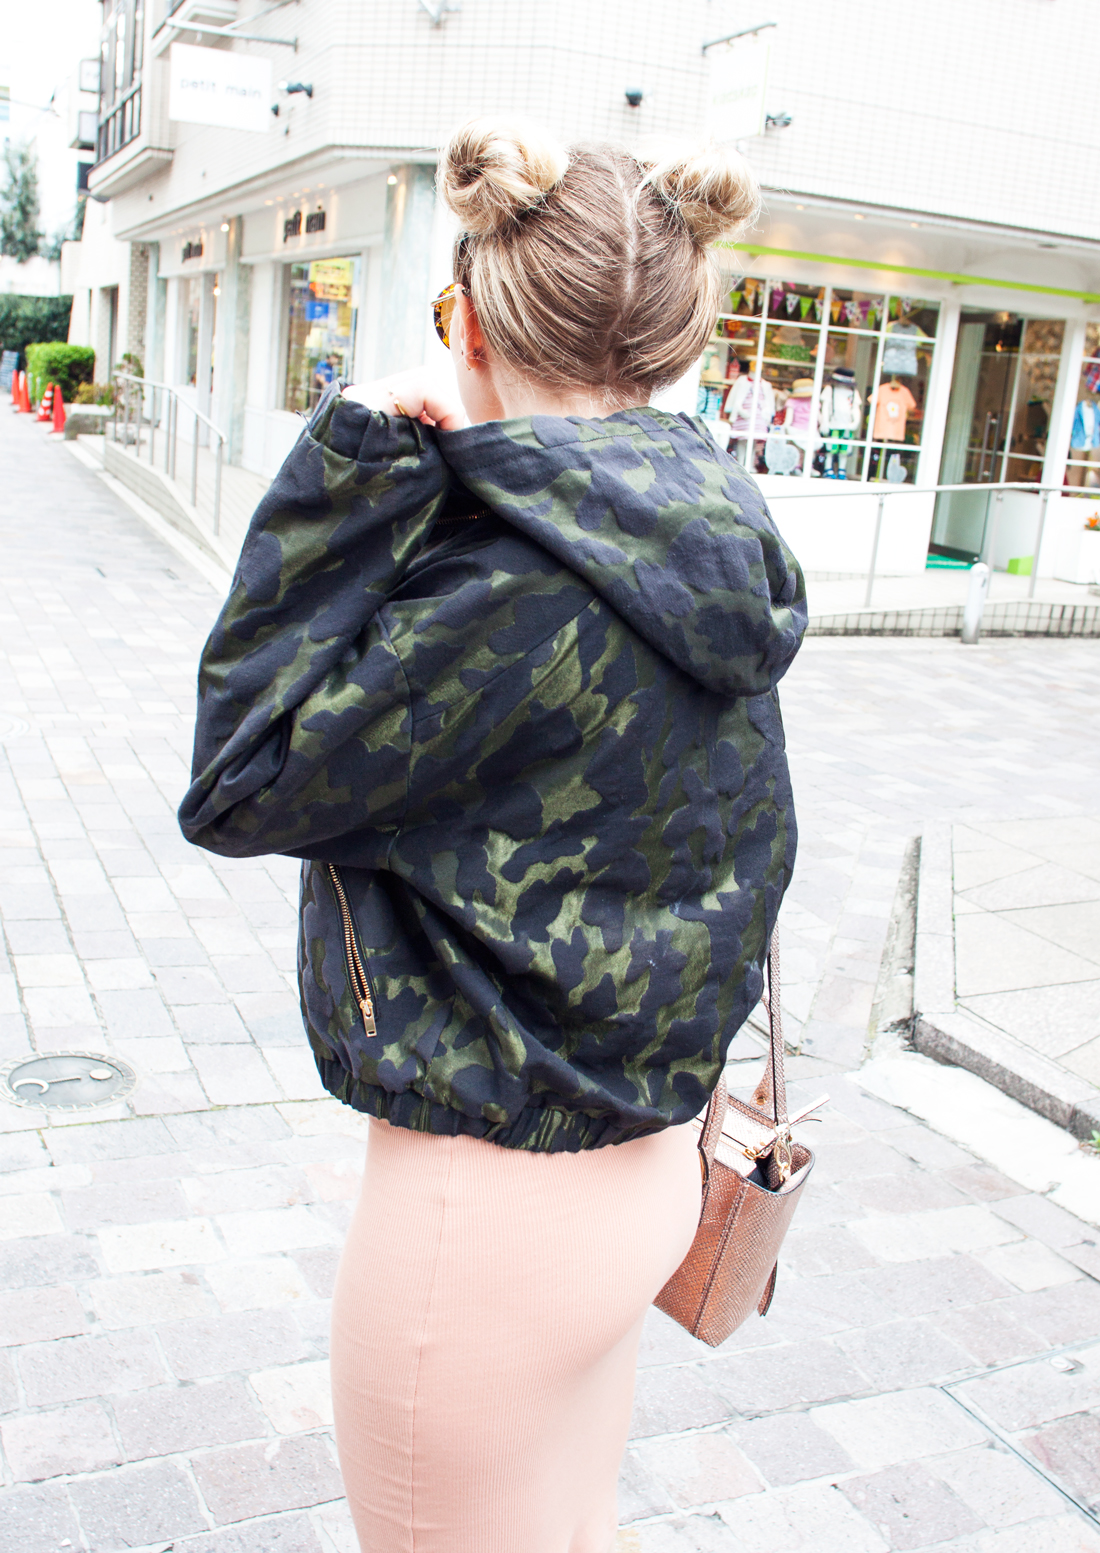 space buns, two buns hairstyle, space buns hairstyle, camouflage bomber jacket, jiyugaoka, henri bender bag, nike max air, nude dress, double choker, hairstyle 2016